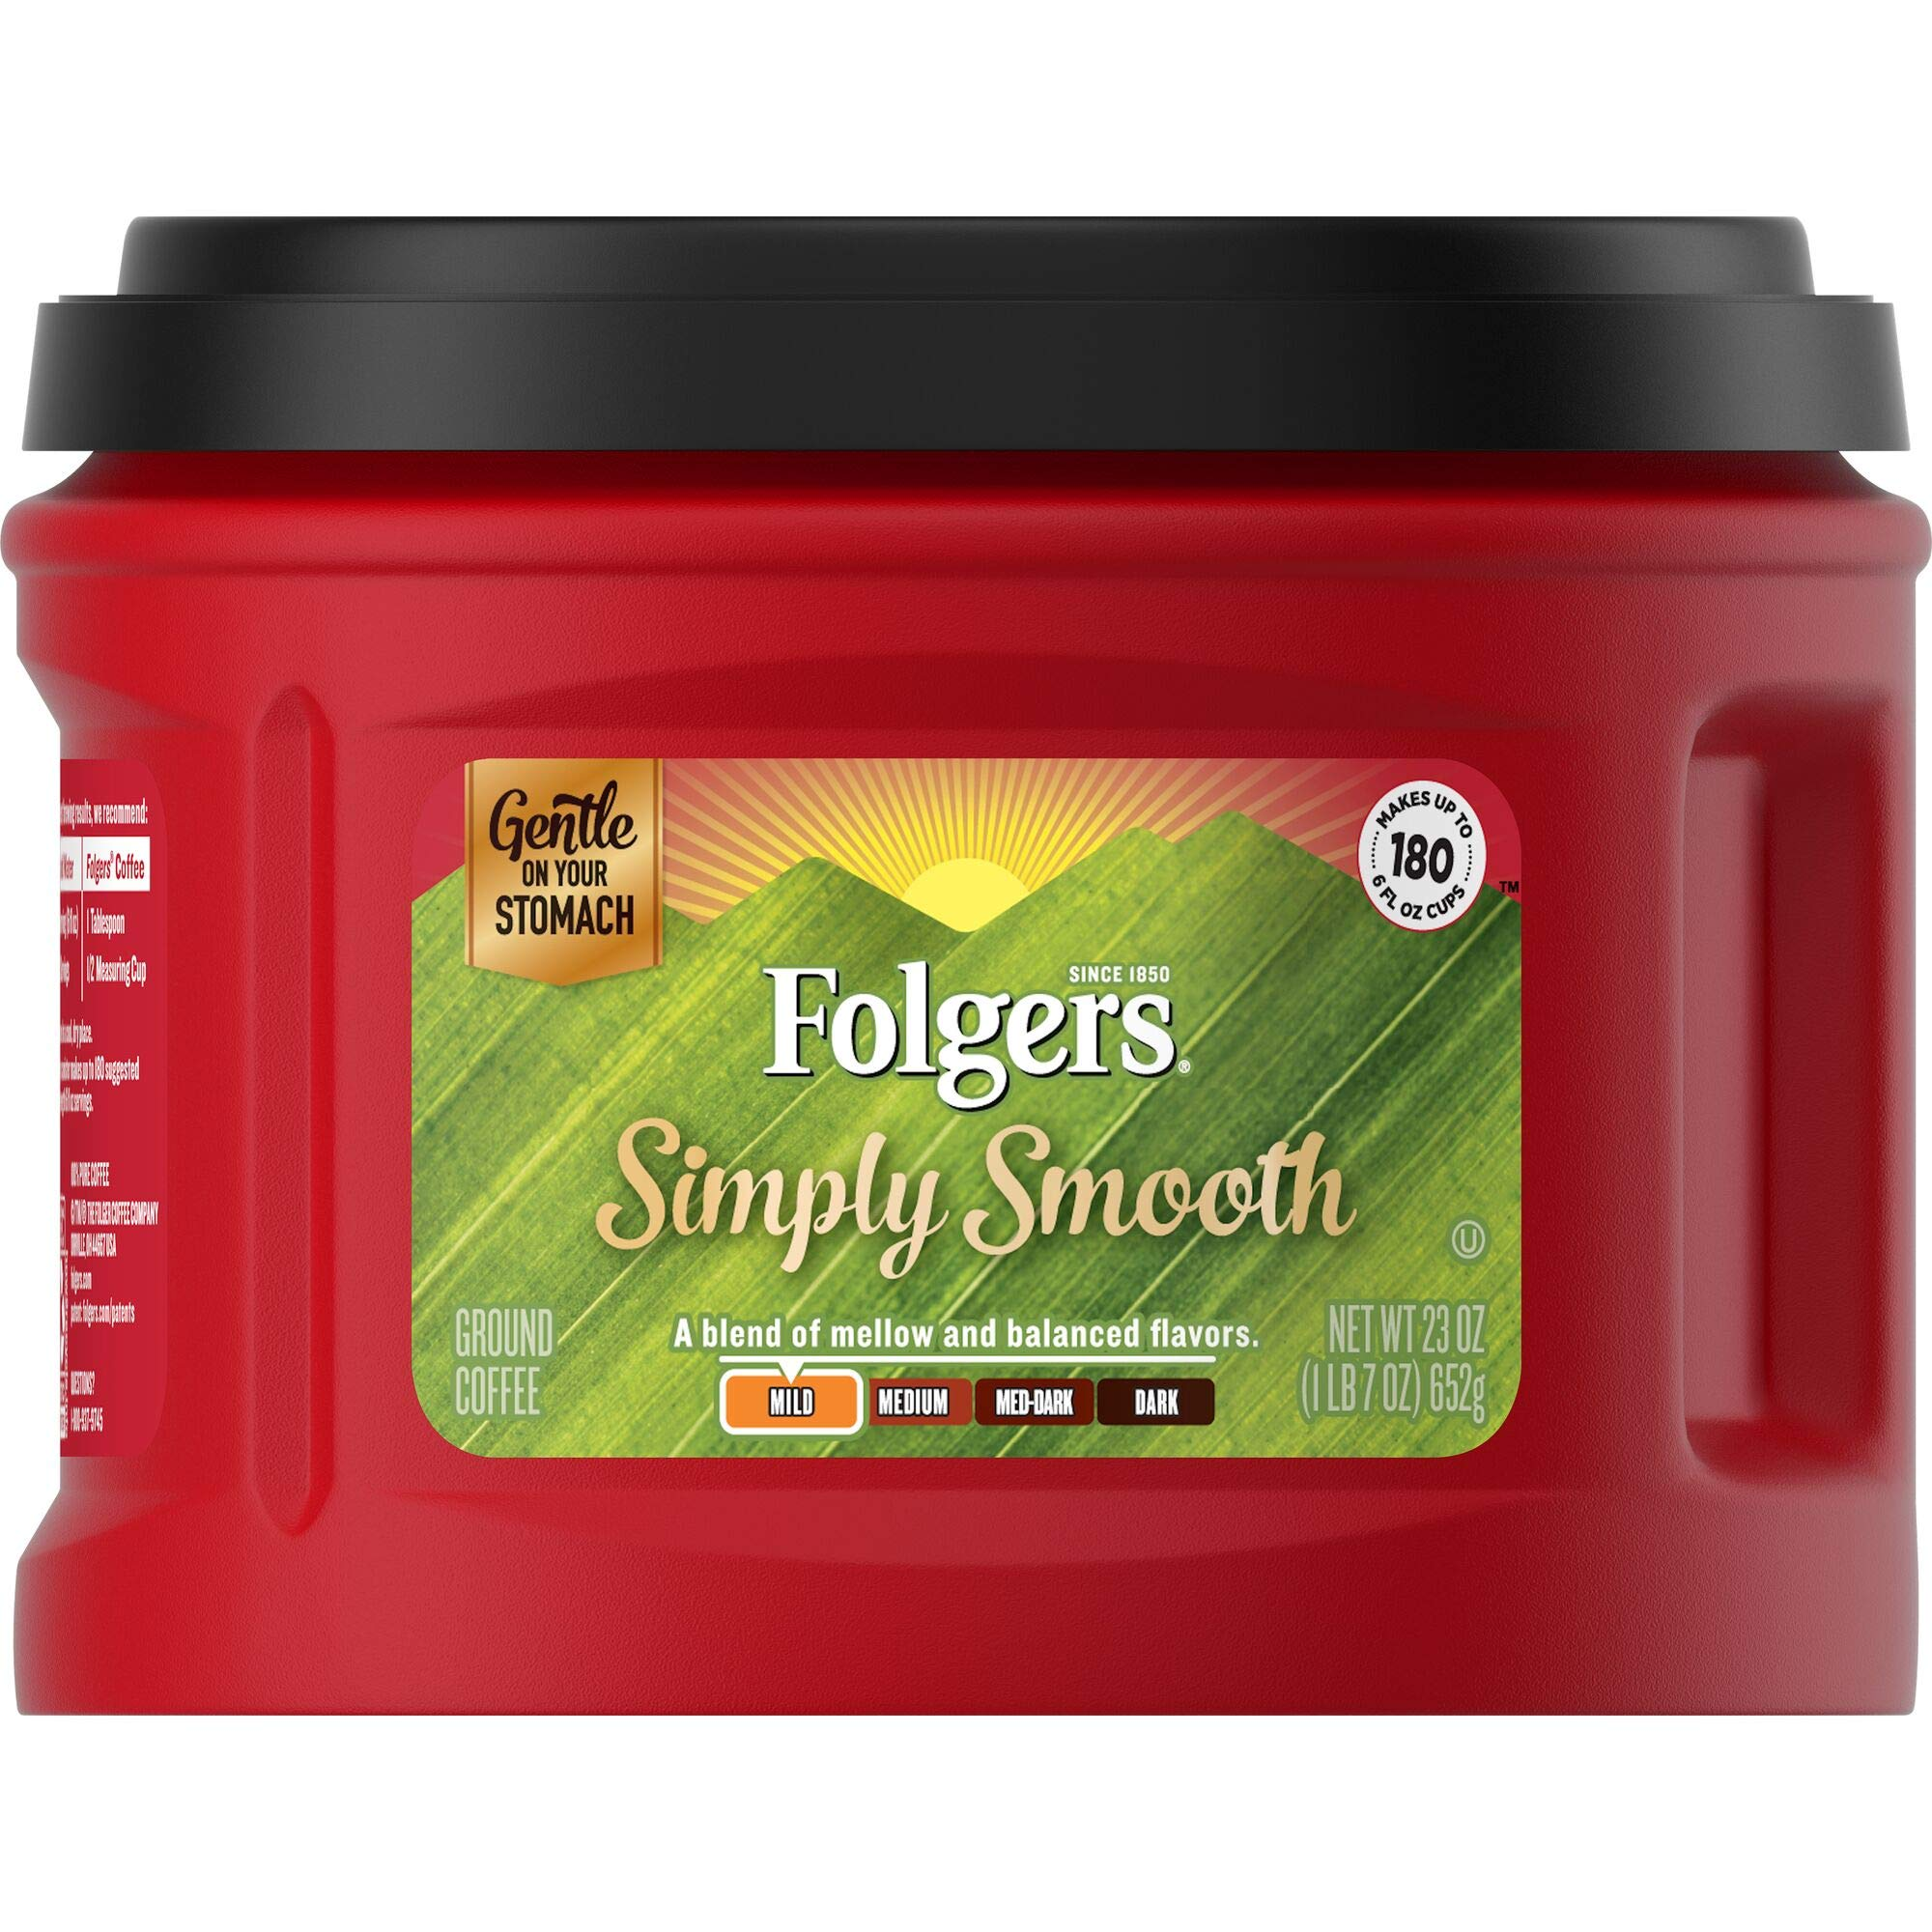 Folgers Simply Smooth Ground Coffee, Medium Roast, 23 Ounce (Pack of 6), Packaging May Vary by Folgers